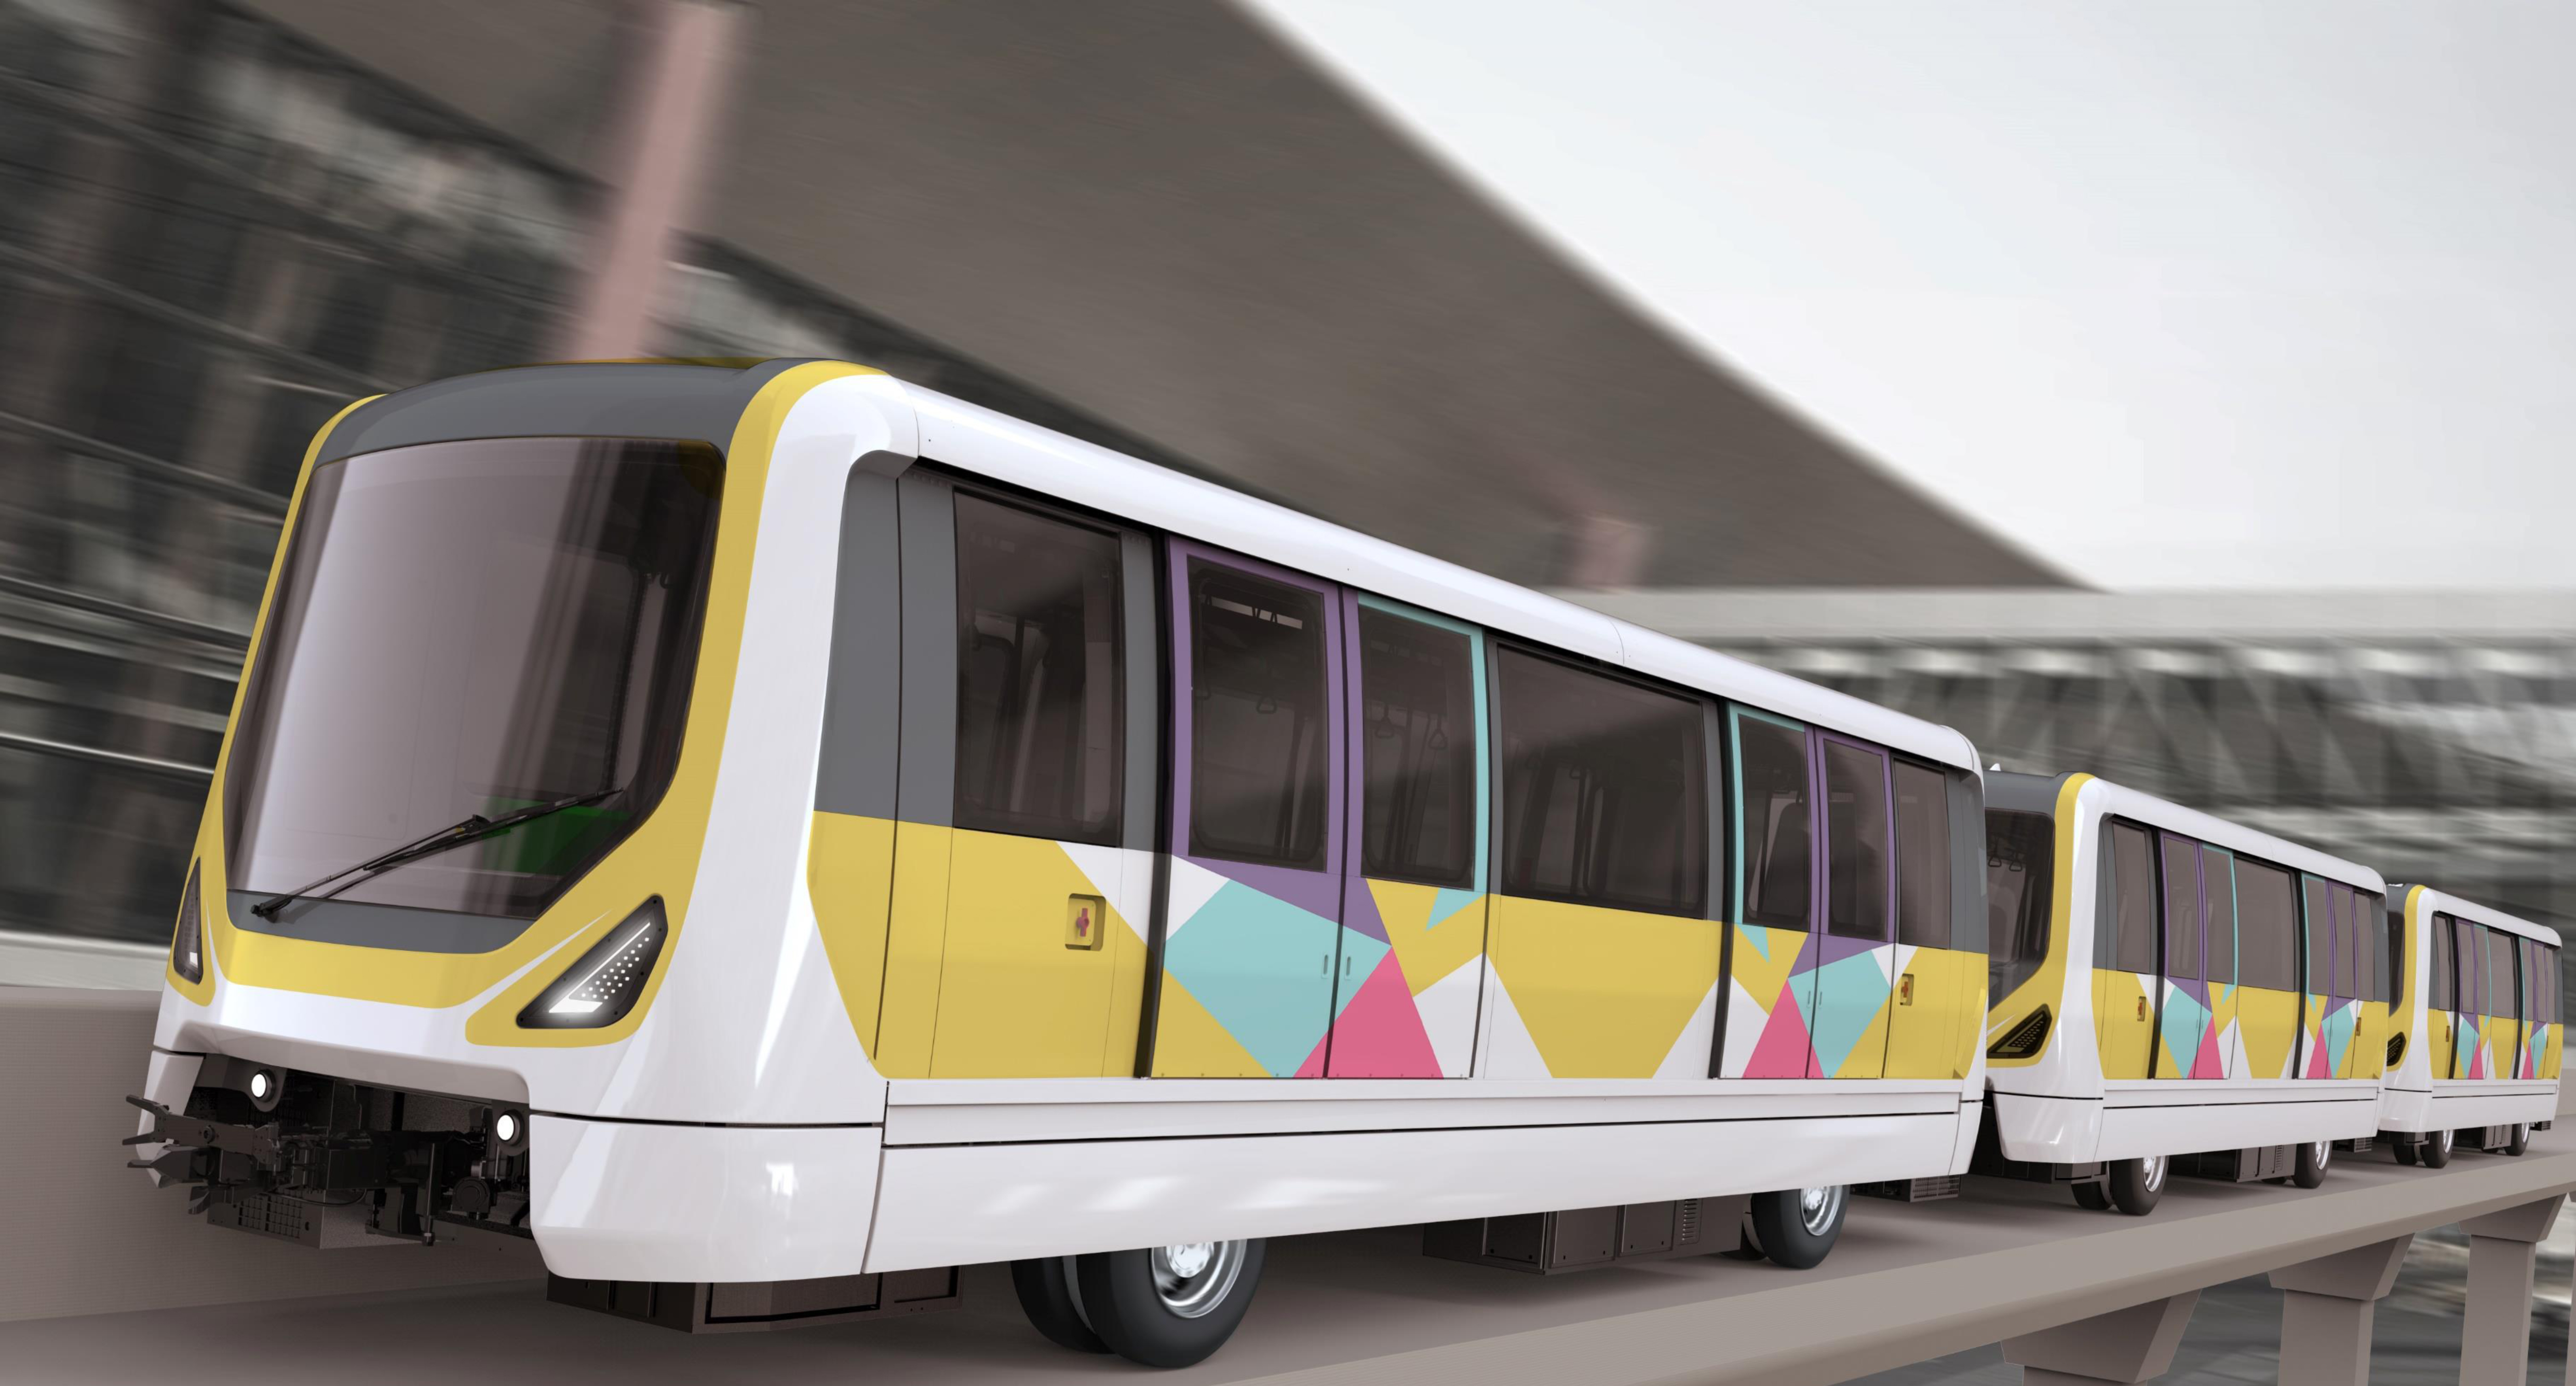 Consortium of Bombardier JVs Awarded Beijing Airport Automated People Mover Contract